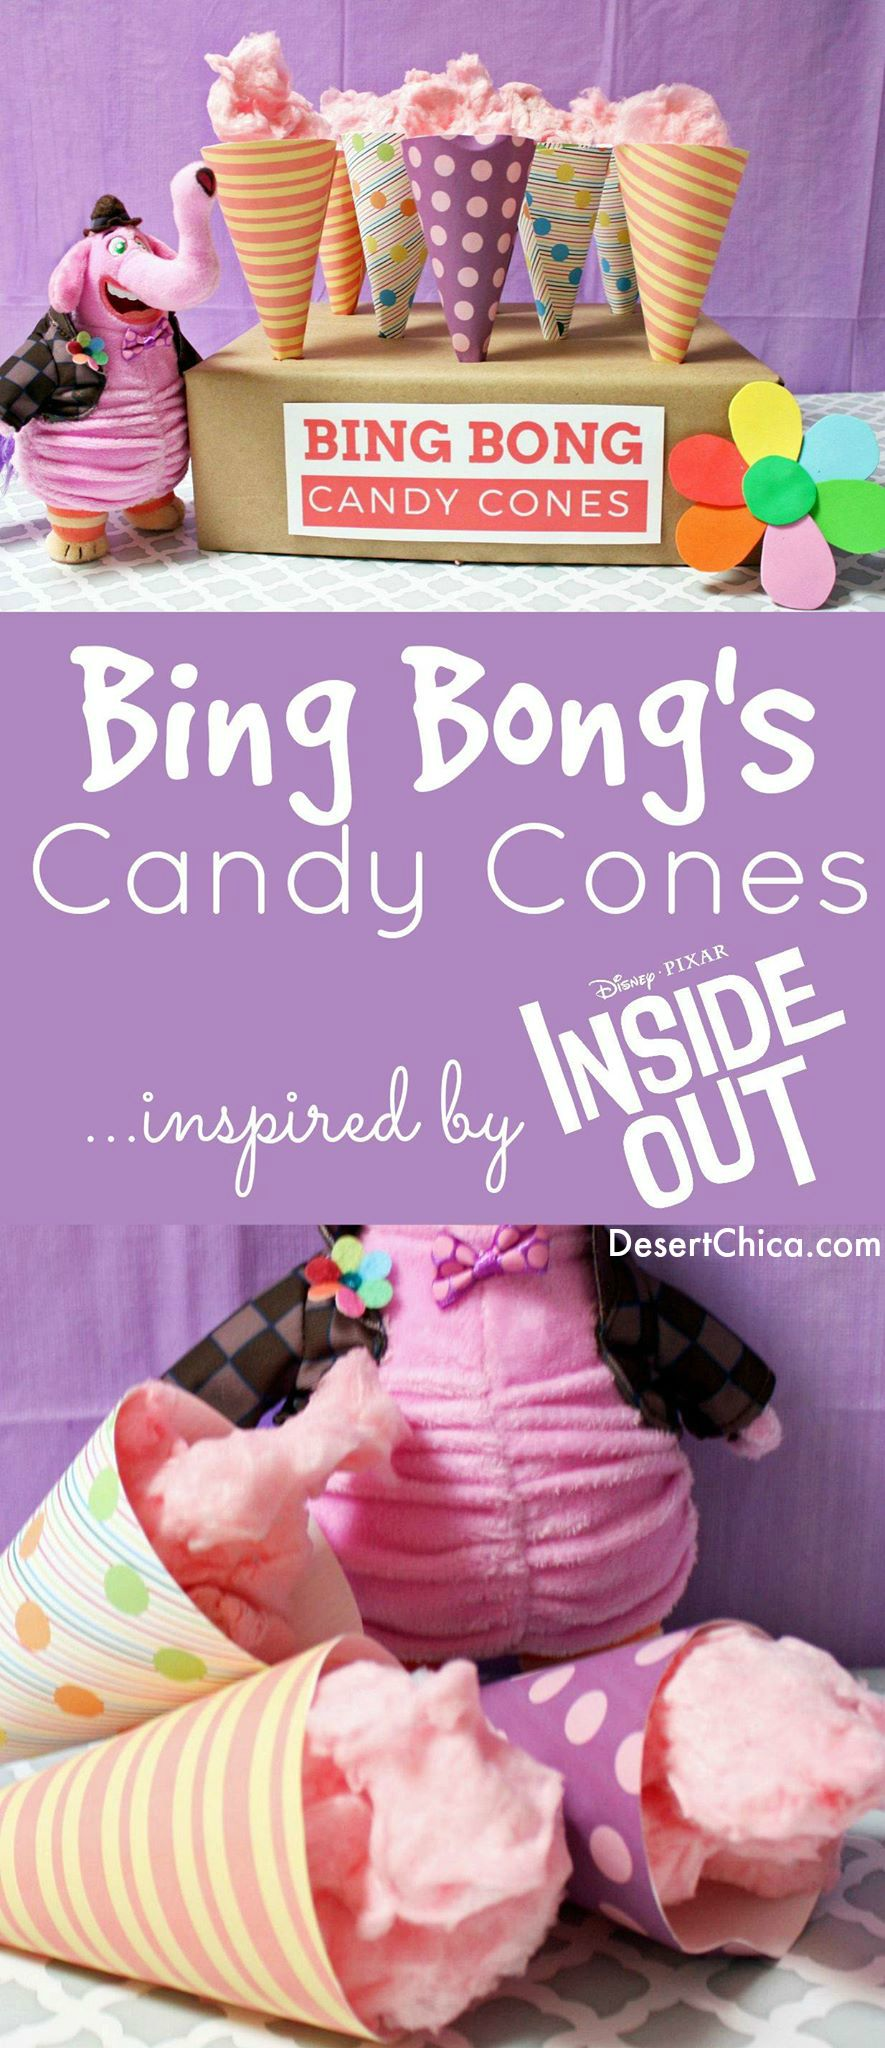 Bing Bong's Candy Cones inspired by Inside Out